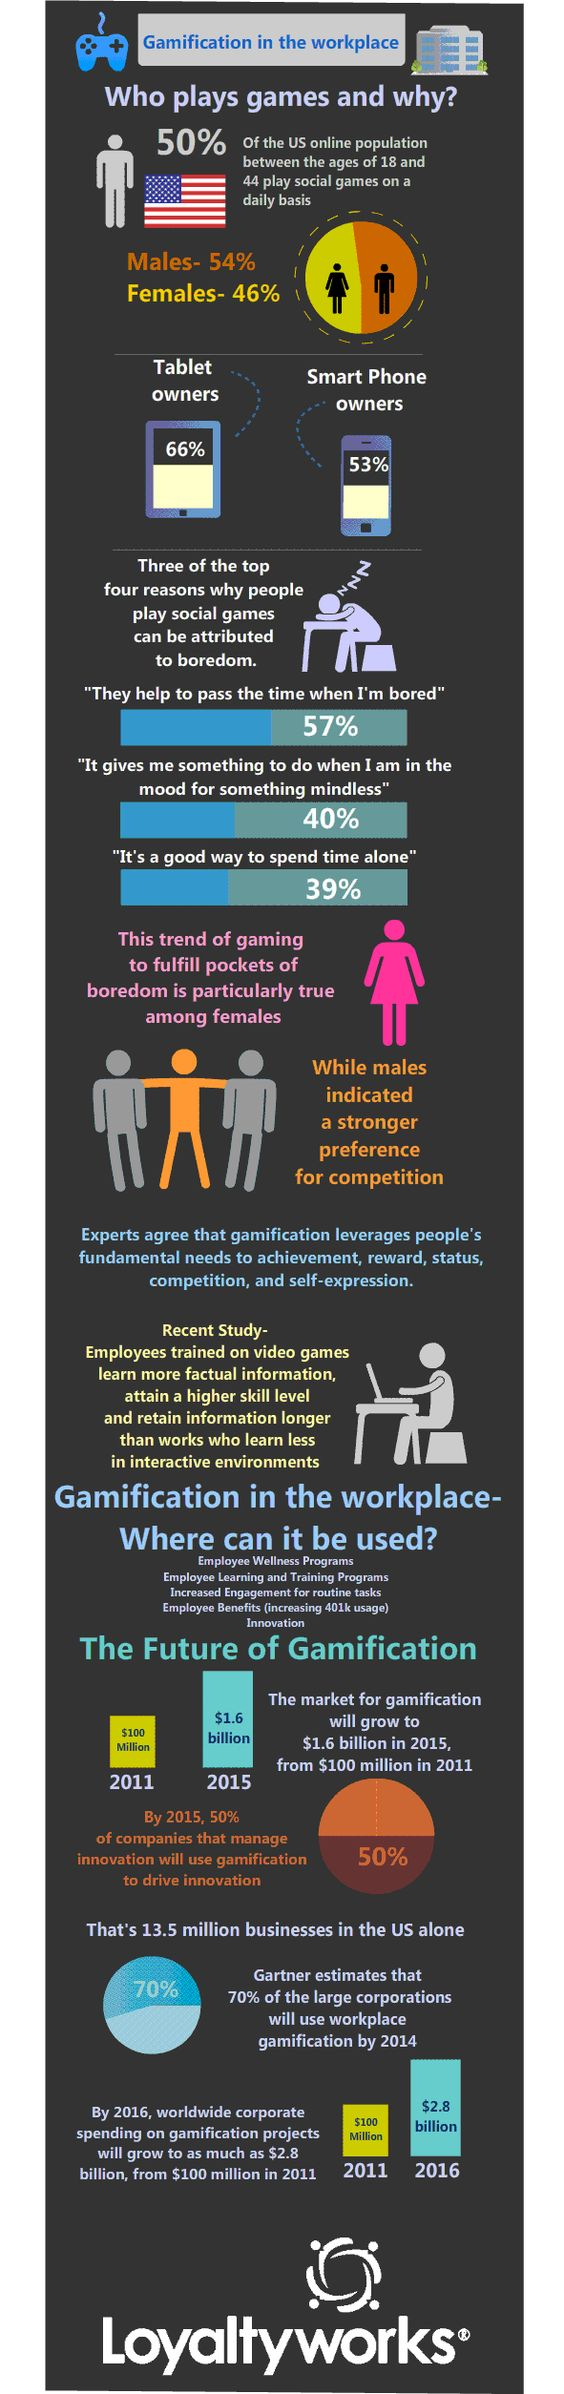 "#Gamification is rapidly spreading in #workplaces, so don't be surprised if your boss asks you to ""play a game""!"